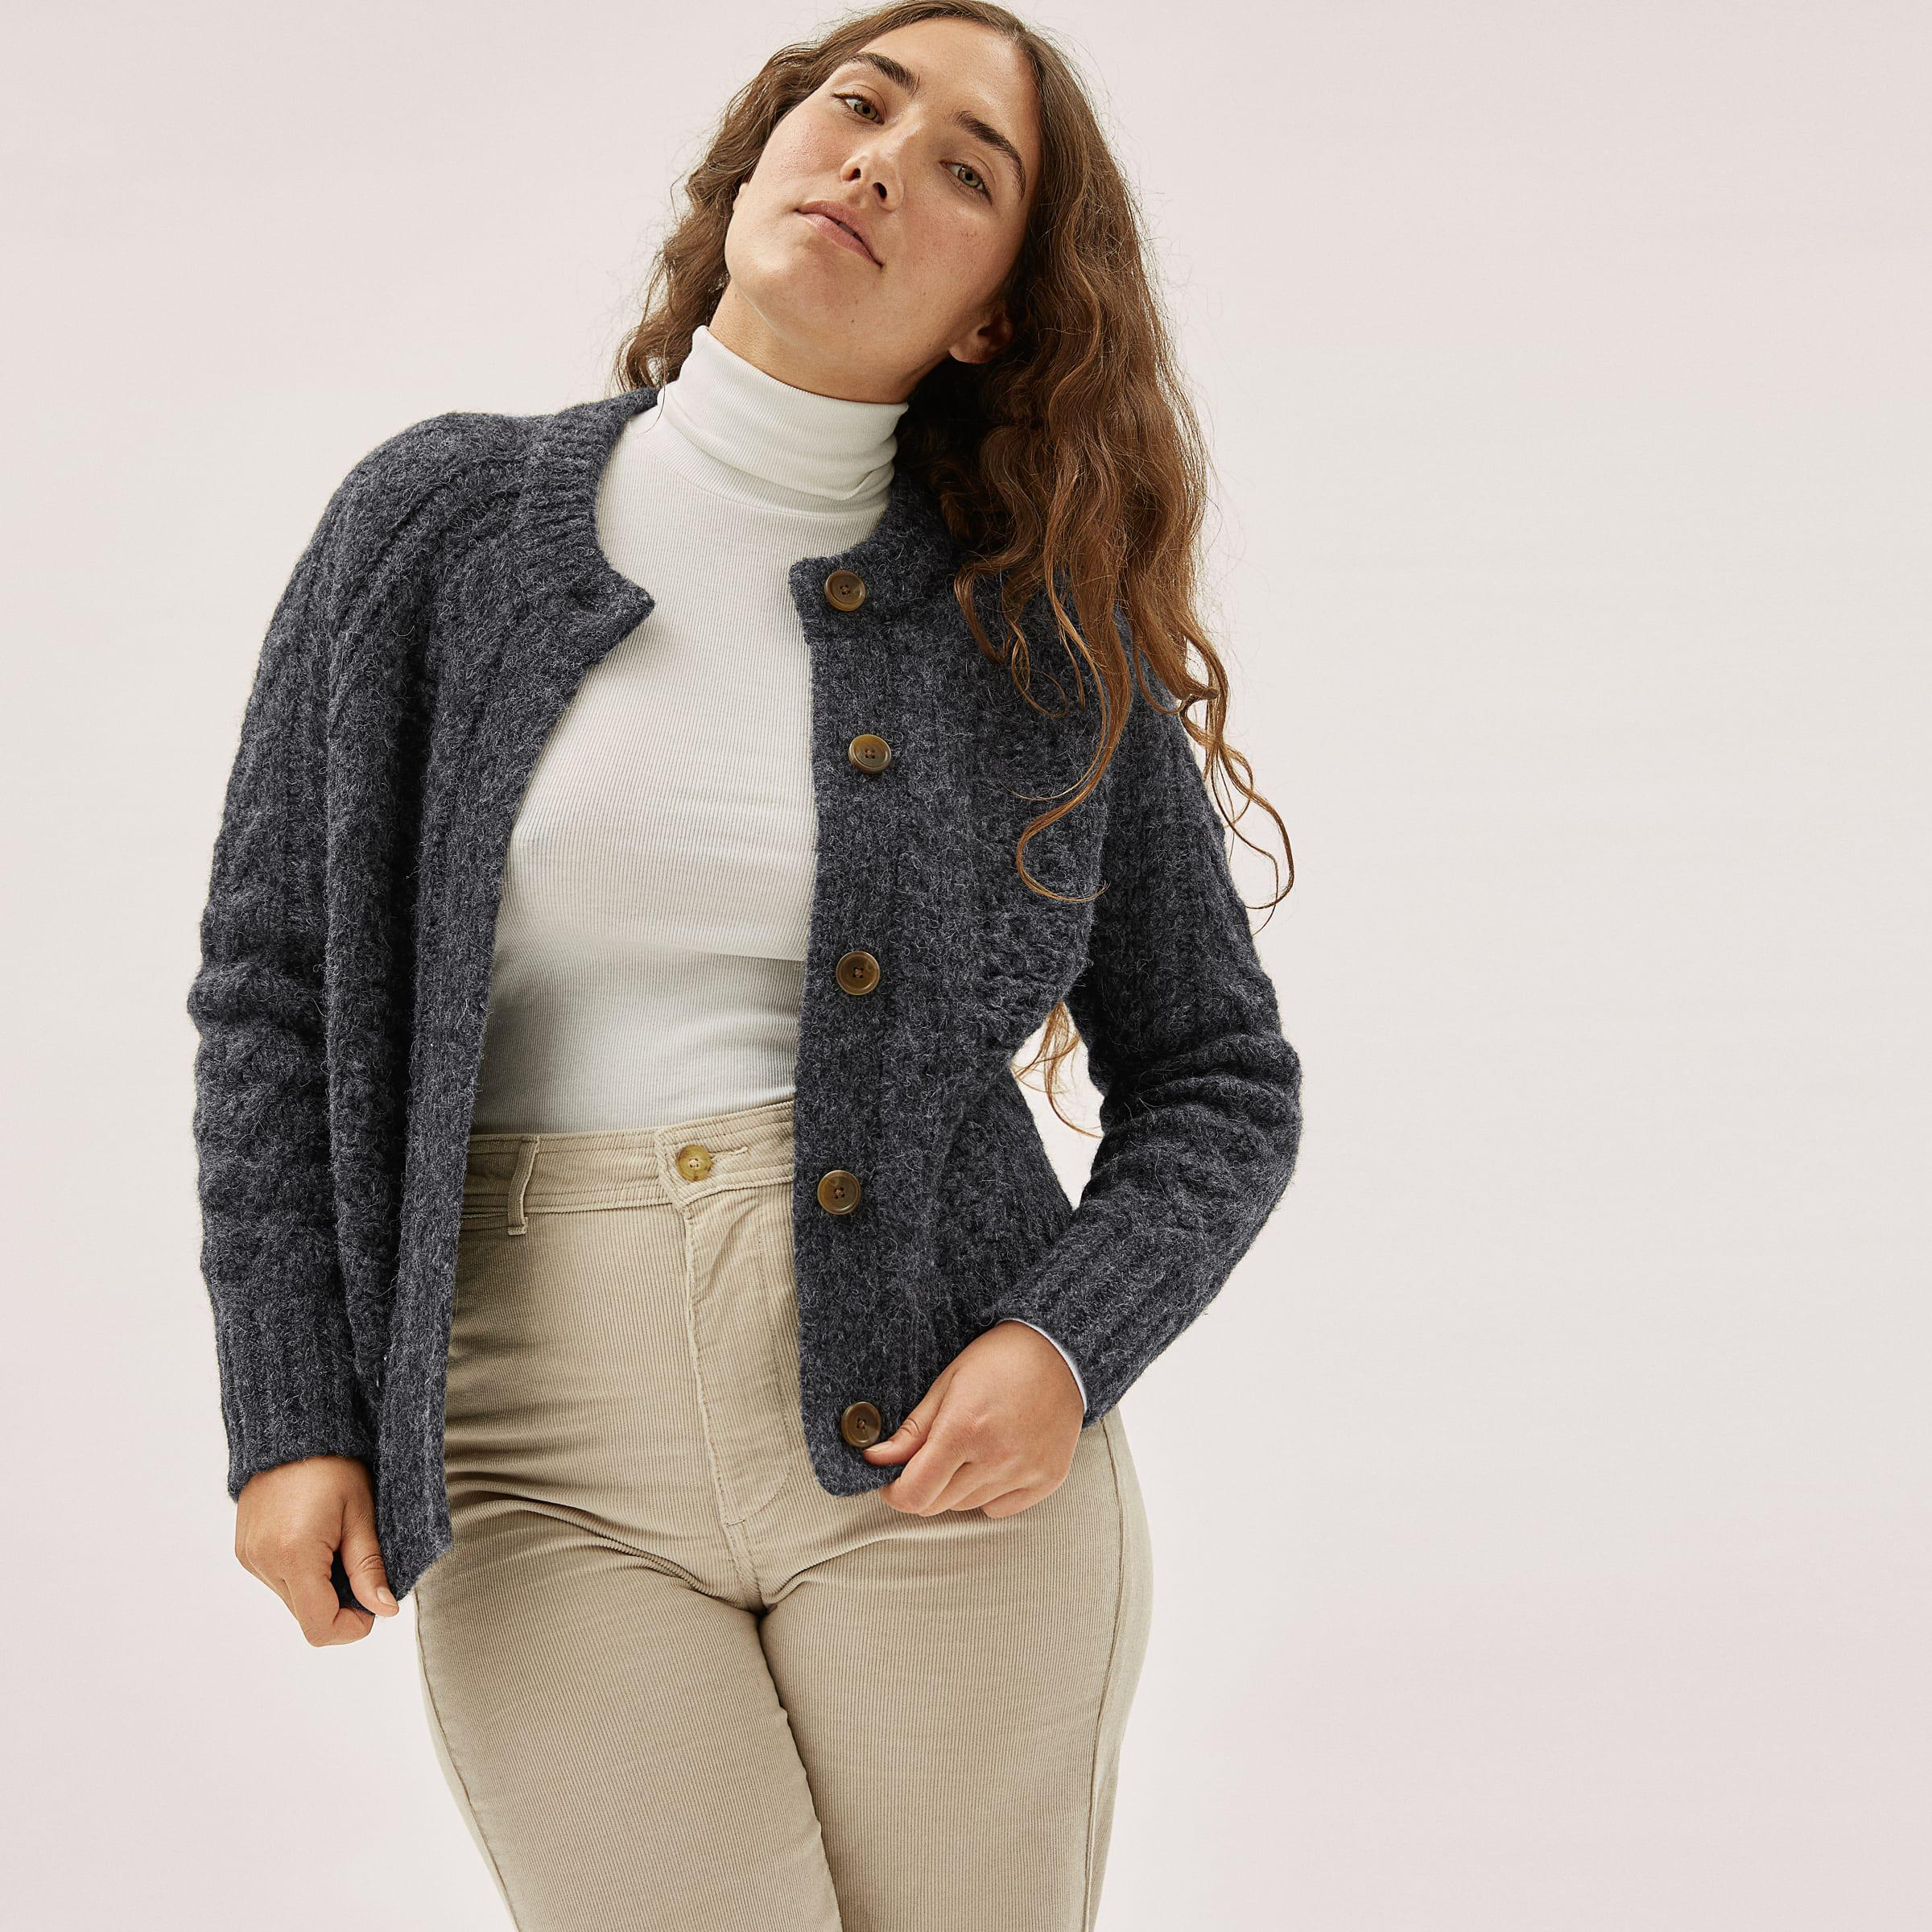 The Cloud Cable Cardigan